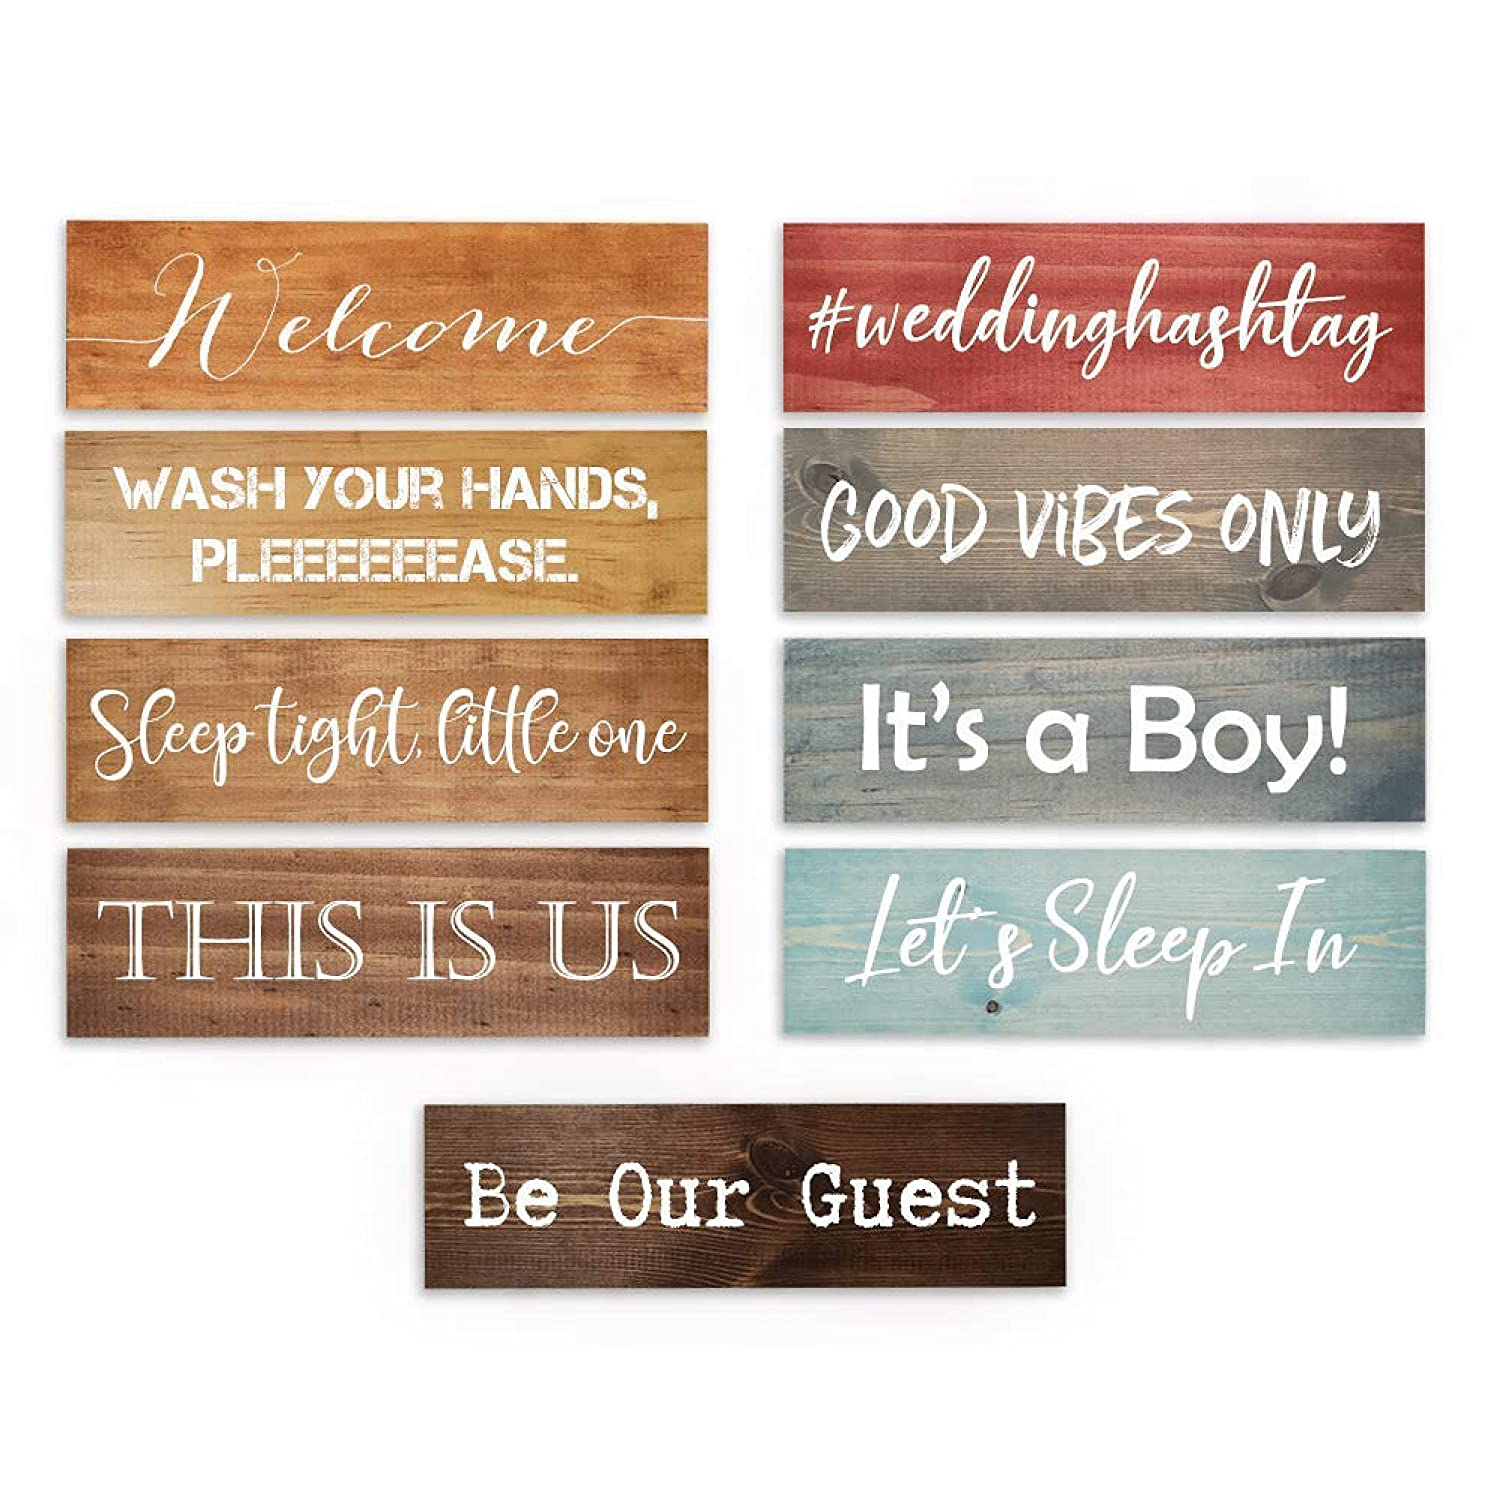 Custom Wood Signs Personalized | Farmhouse Decor | Personalized Signs | Personalized Rustic Wood Signs | Custom Sign | Great Custom Gift for Him or Her | Ready to Hang!